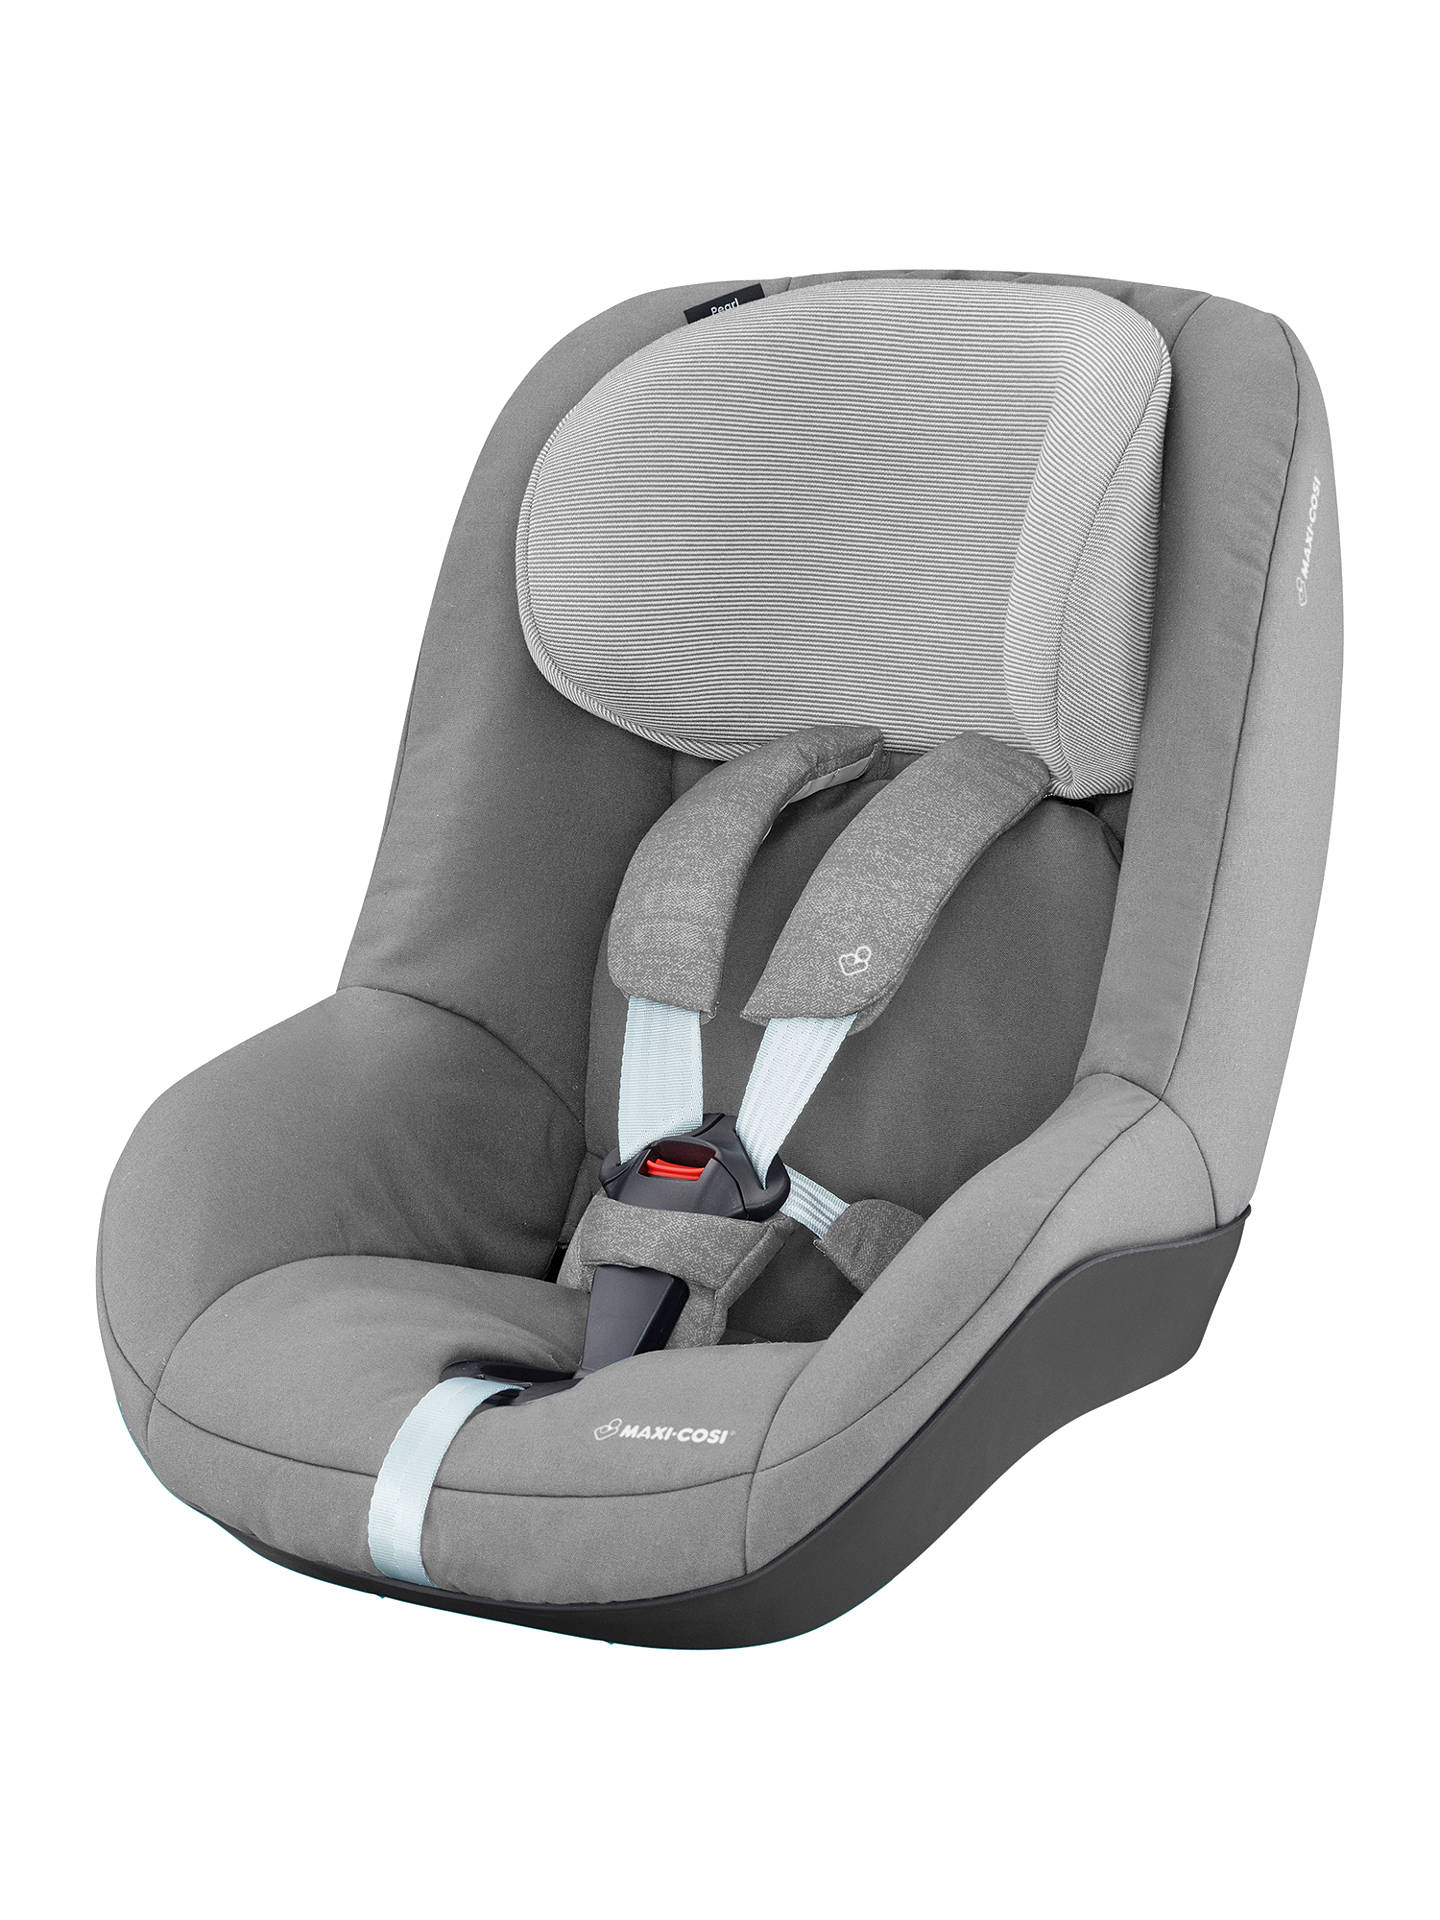 Maxi-Cosi Pearl Group 1 Car Seat, Nomad Grey at John Lewis & Partners